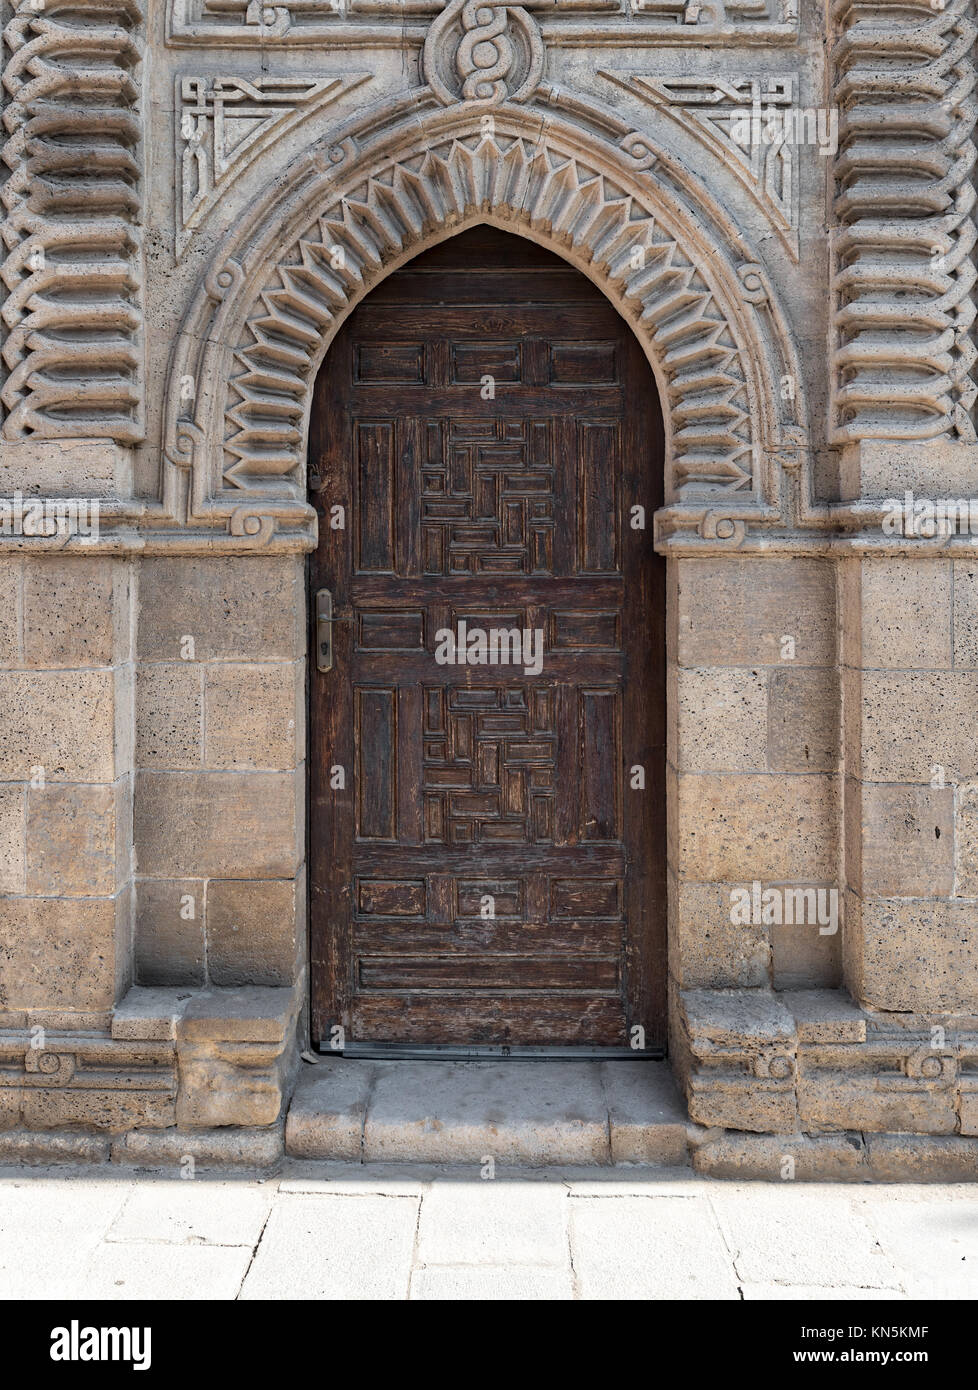 Grunge wooden ornate aged vaulted arched door on exterior decorated stone bricks wall at Manial Palace of prince - Stock Image